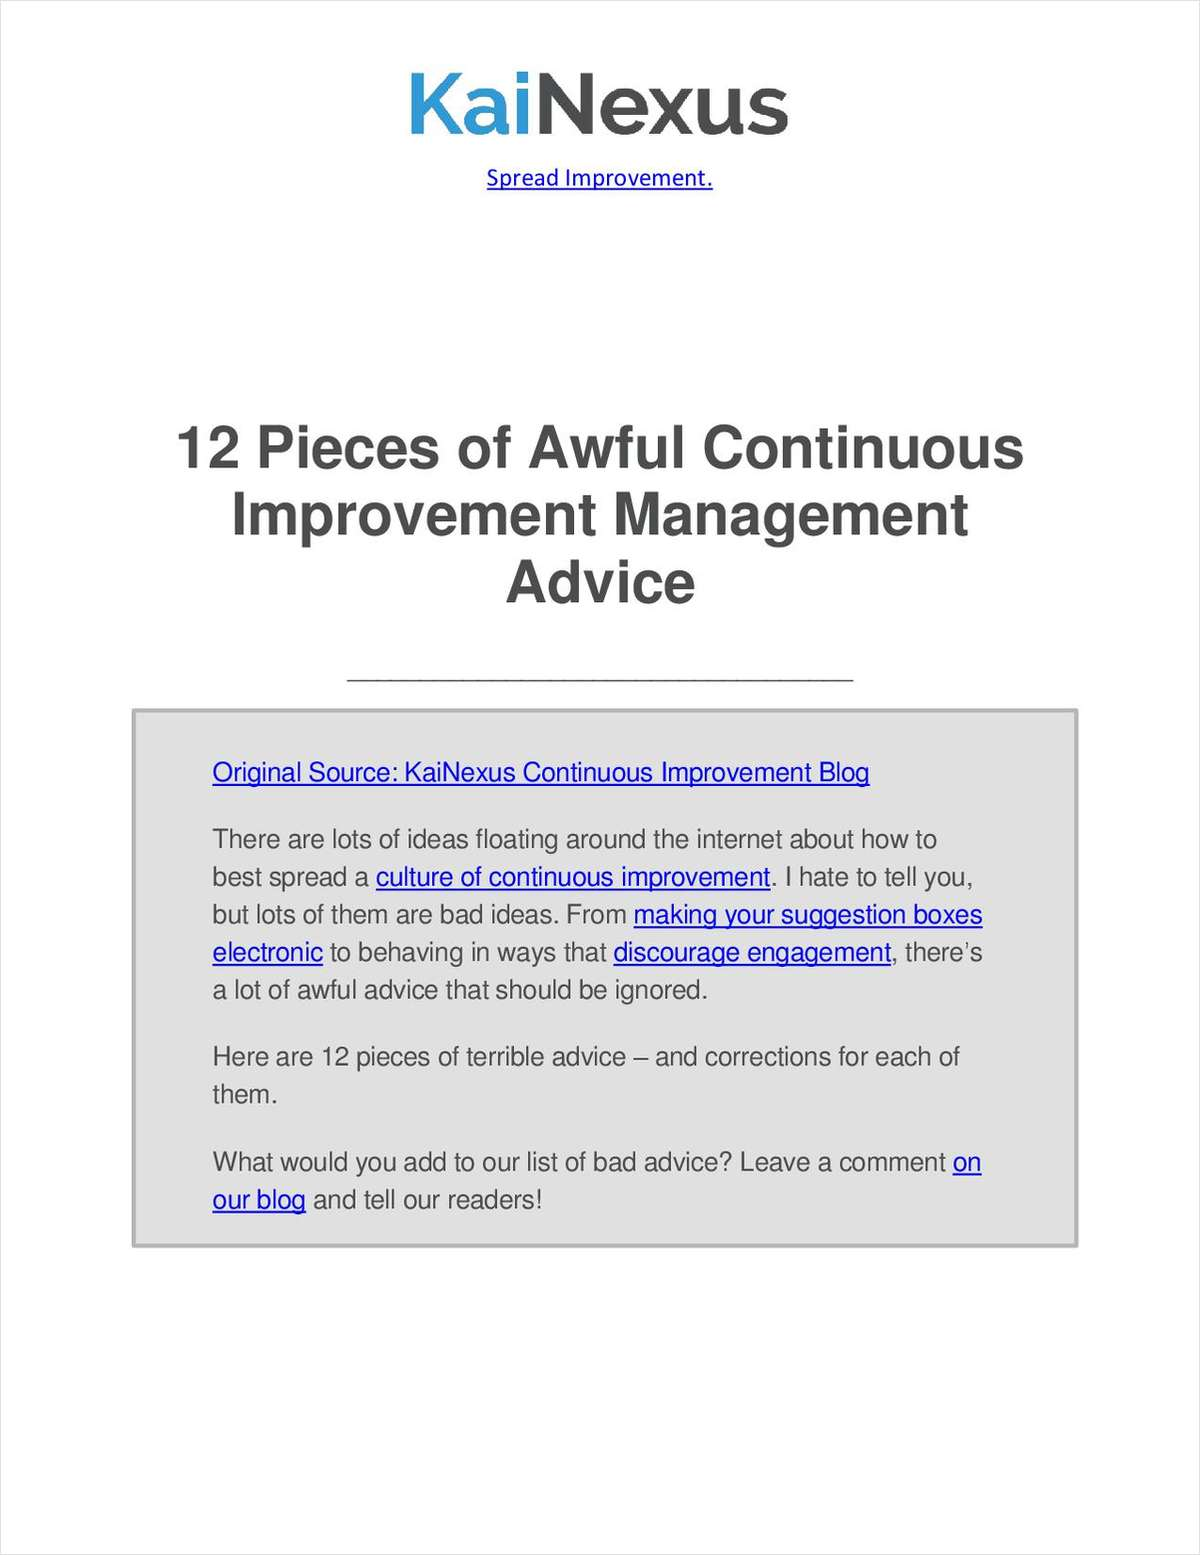 12 Pieces of Awful Continuous Improvement Management Advice